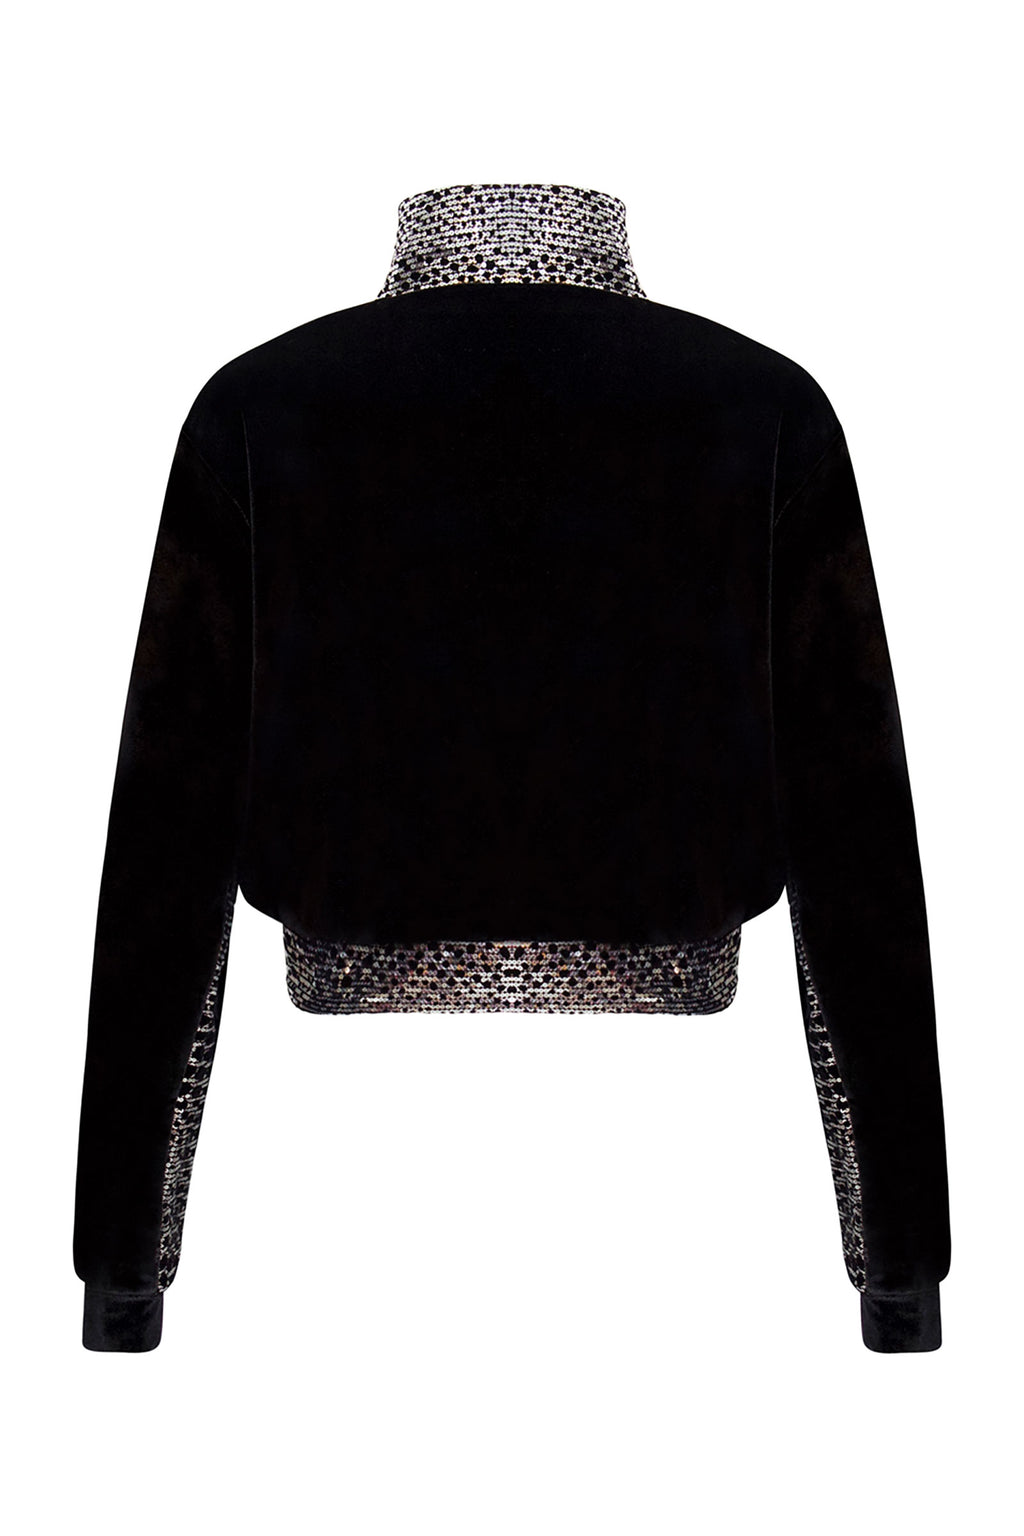 Ilona Rich Velvet Reptilian Sequin Crop Jacket.